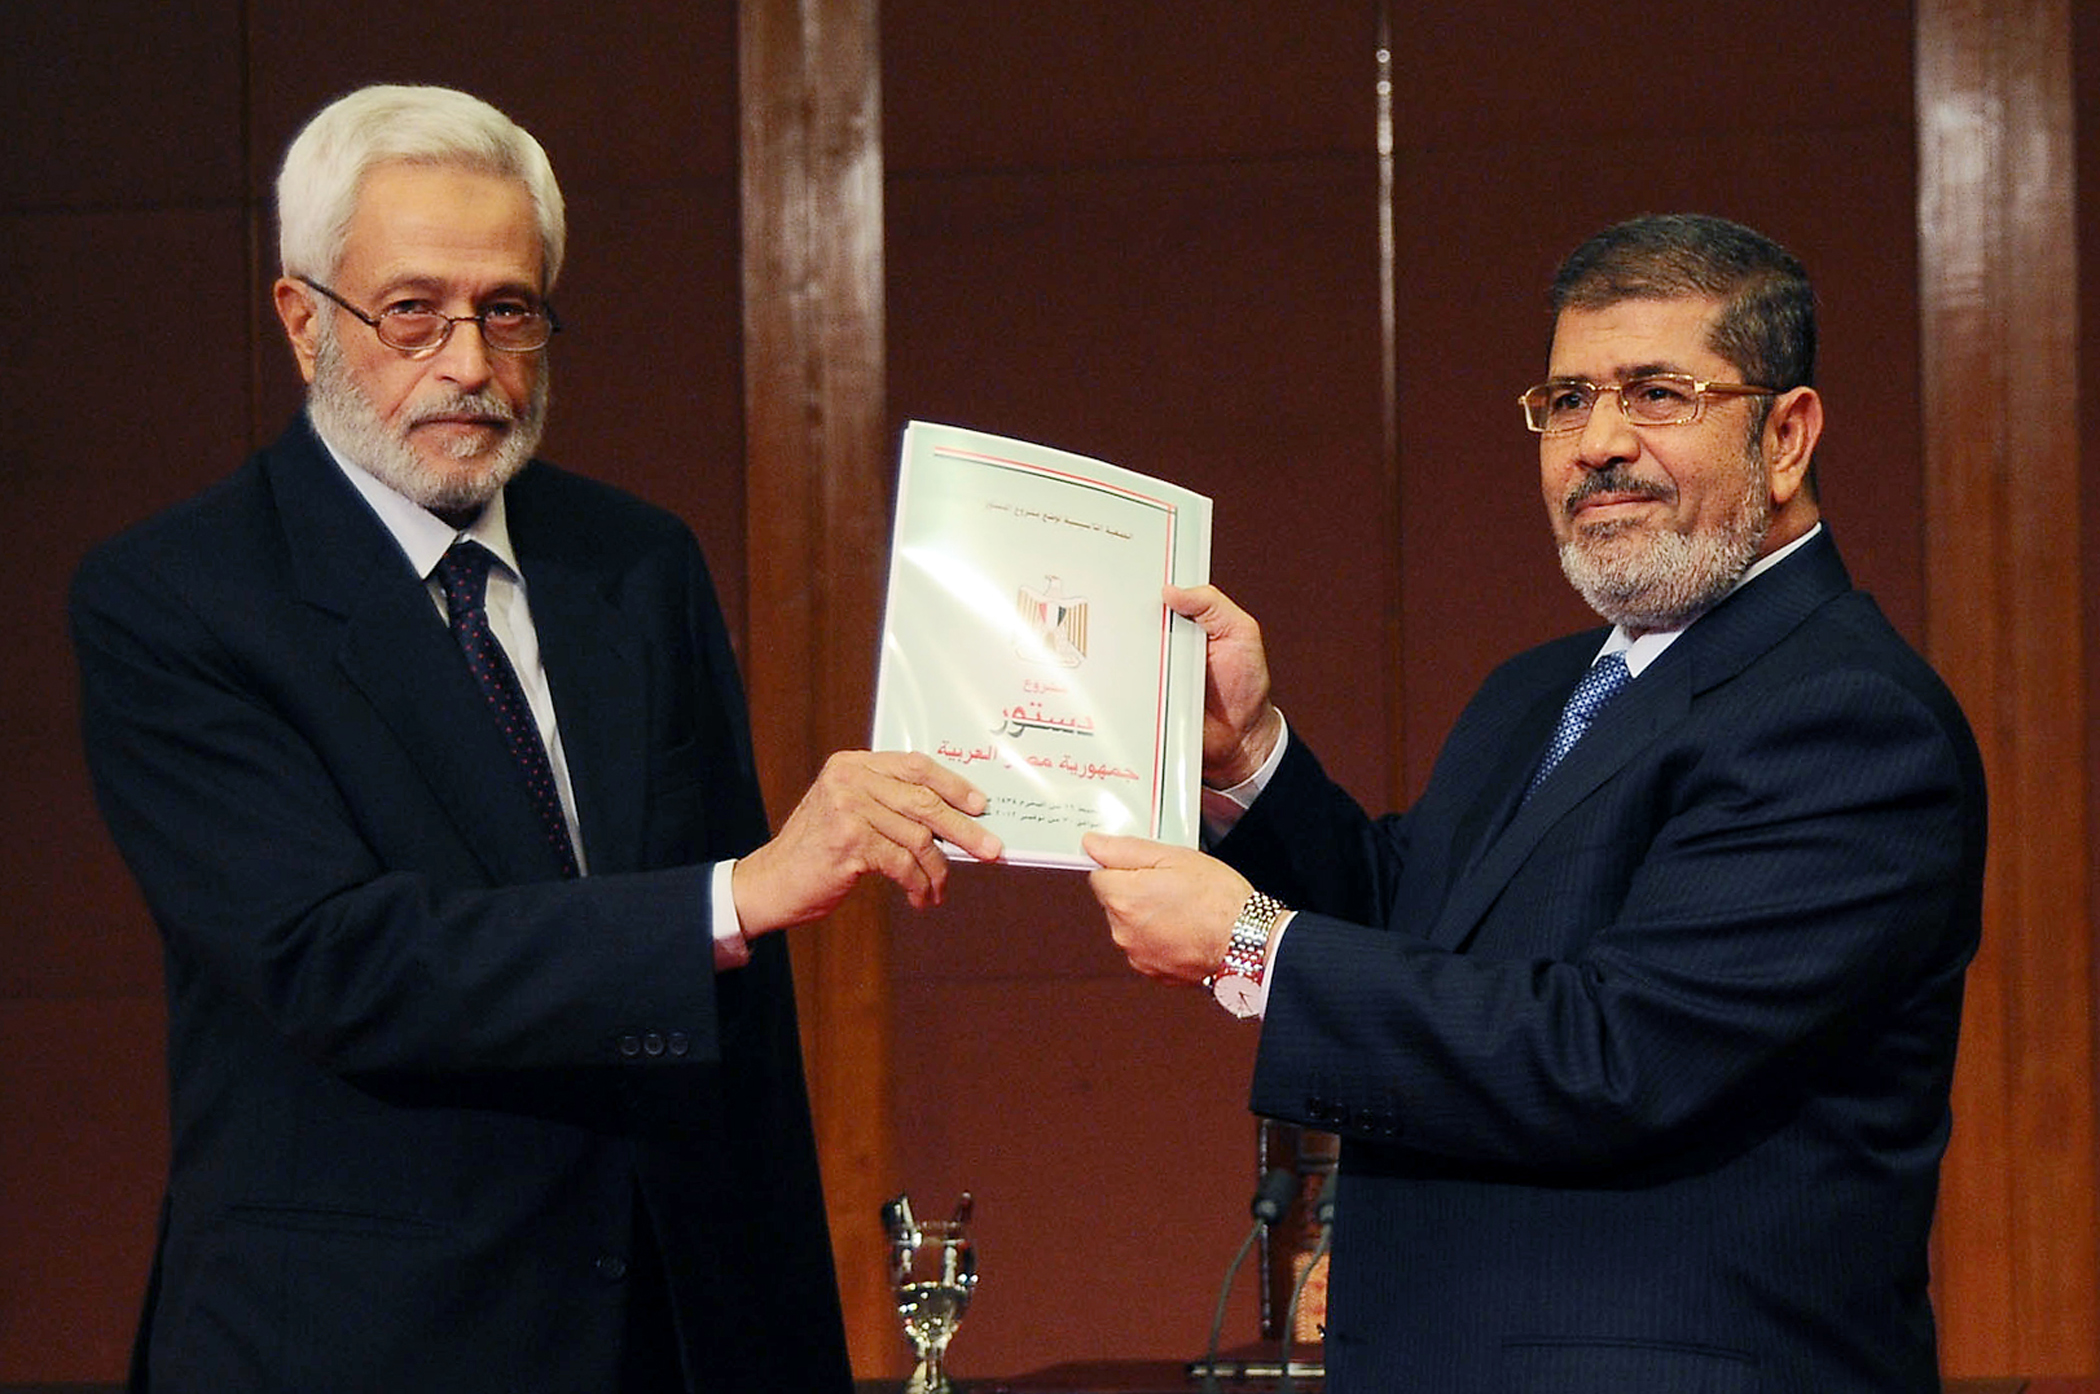 Egypt's president Mohamed Morsi (R) receives a copy of the final draft of Egyptian new constitution from the head of the Islamist-dominated constituent assembly Hossam el-Gheriany, late on December 1, 2012 in Cairo.  (AFP Photo)